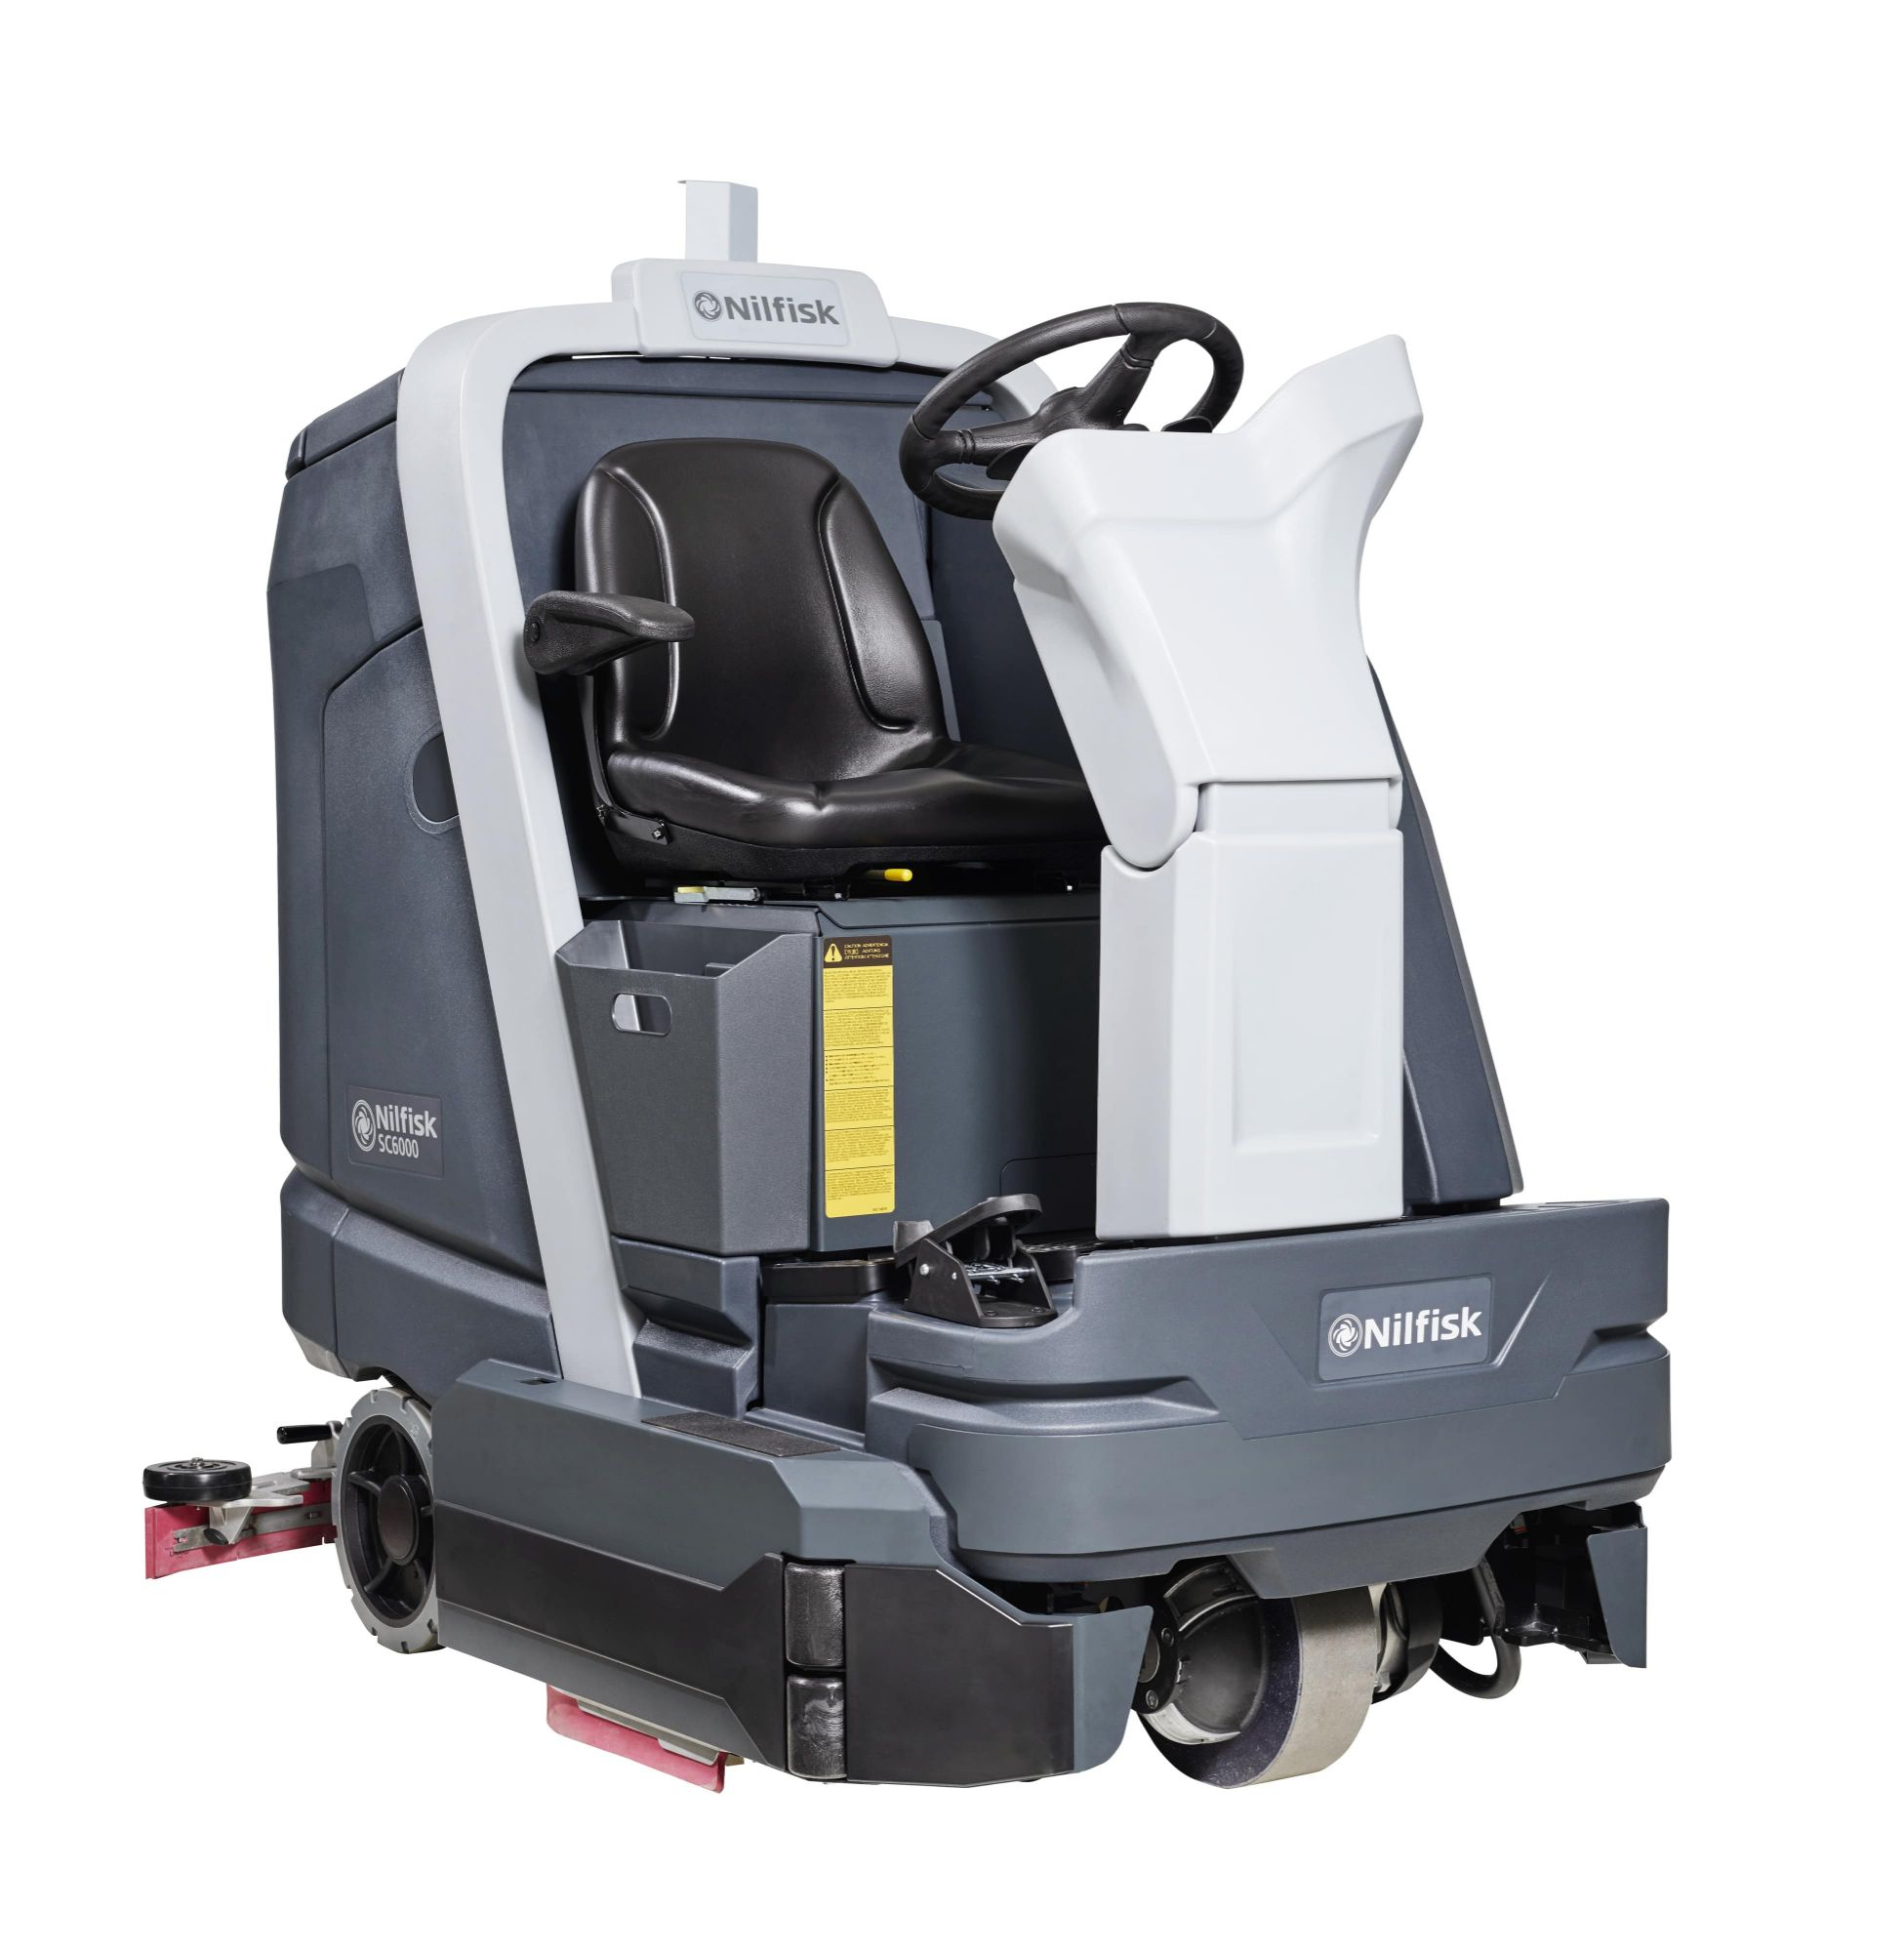 Nilfisk SC6000 1050D Ride On Scrubber Dryer